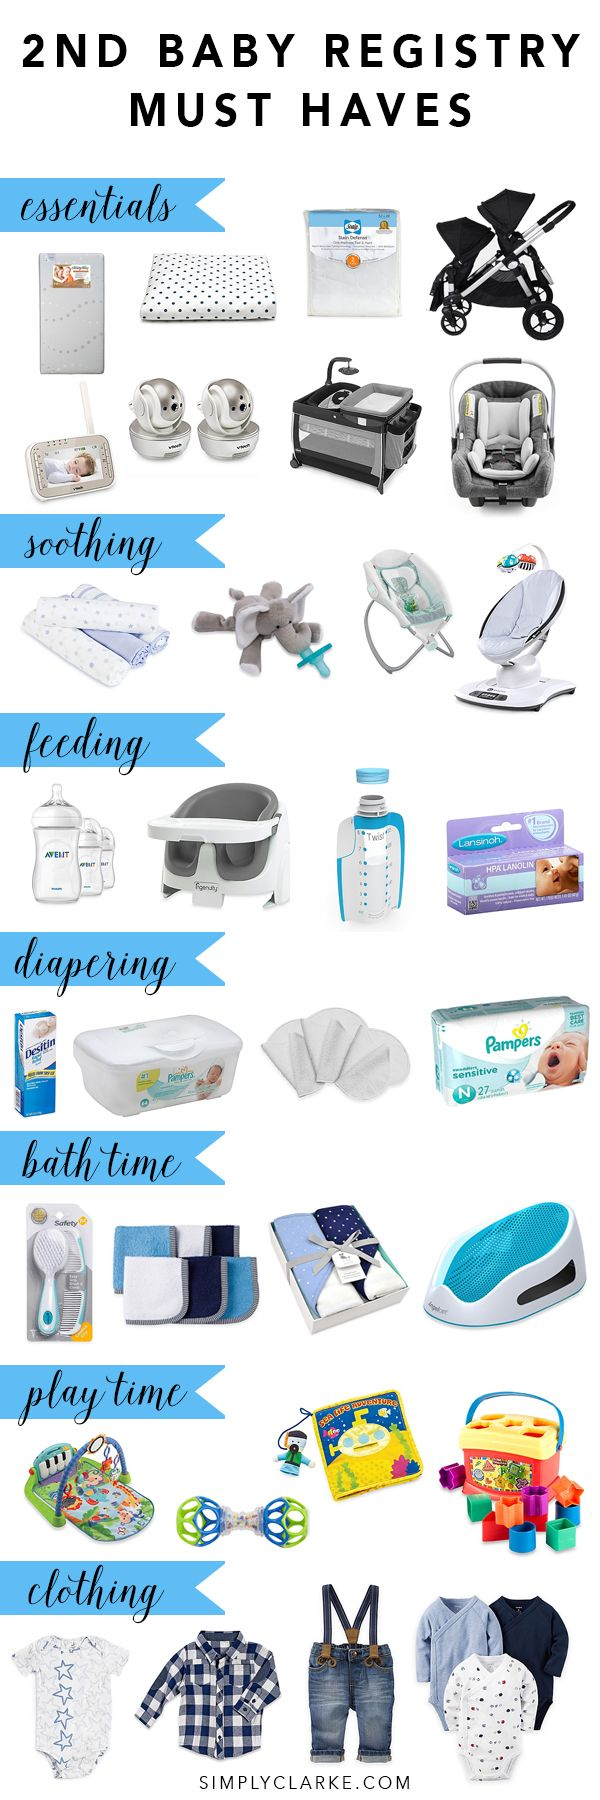 top 25 best baby bath time ideas on pinterest baby bathing 2nd baby registry must haves